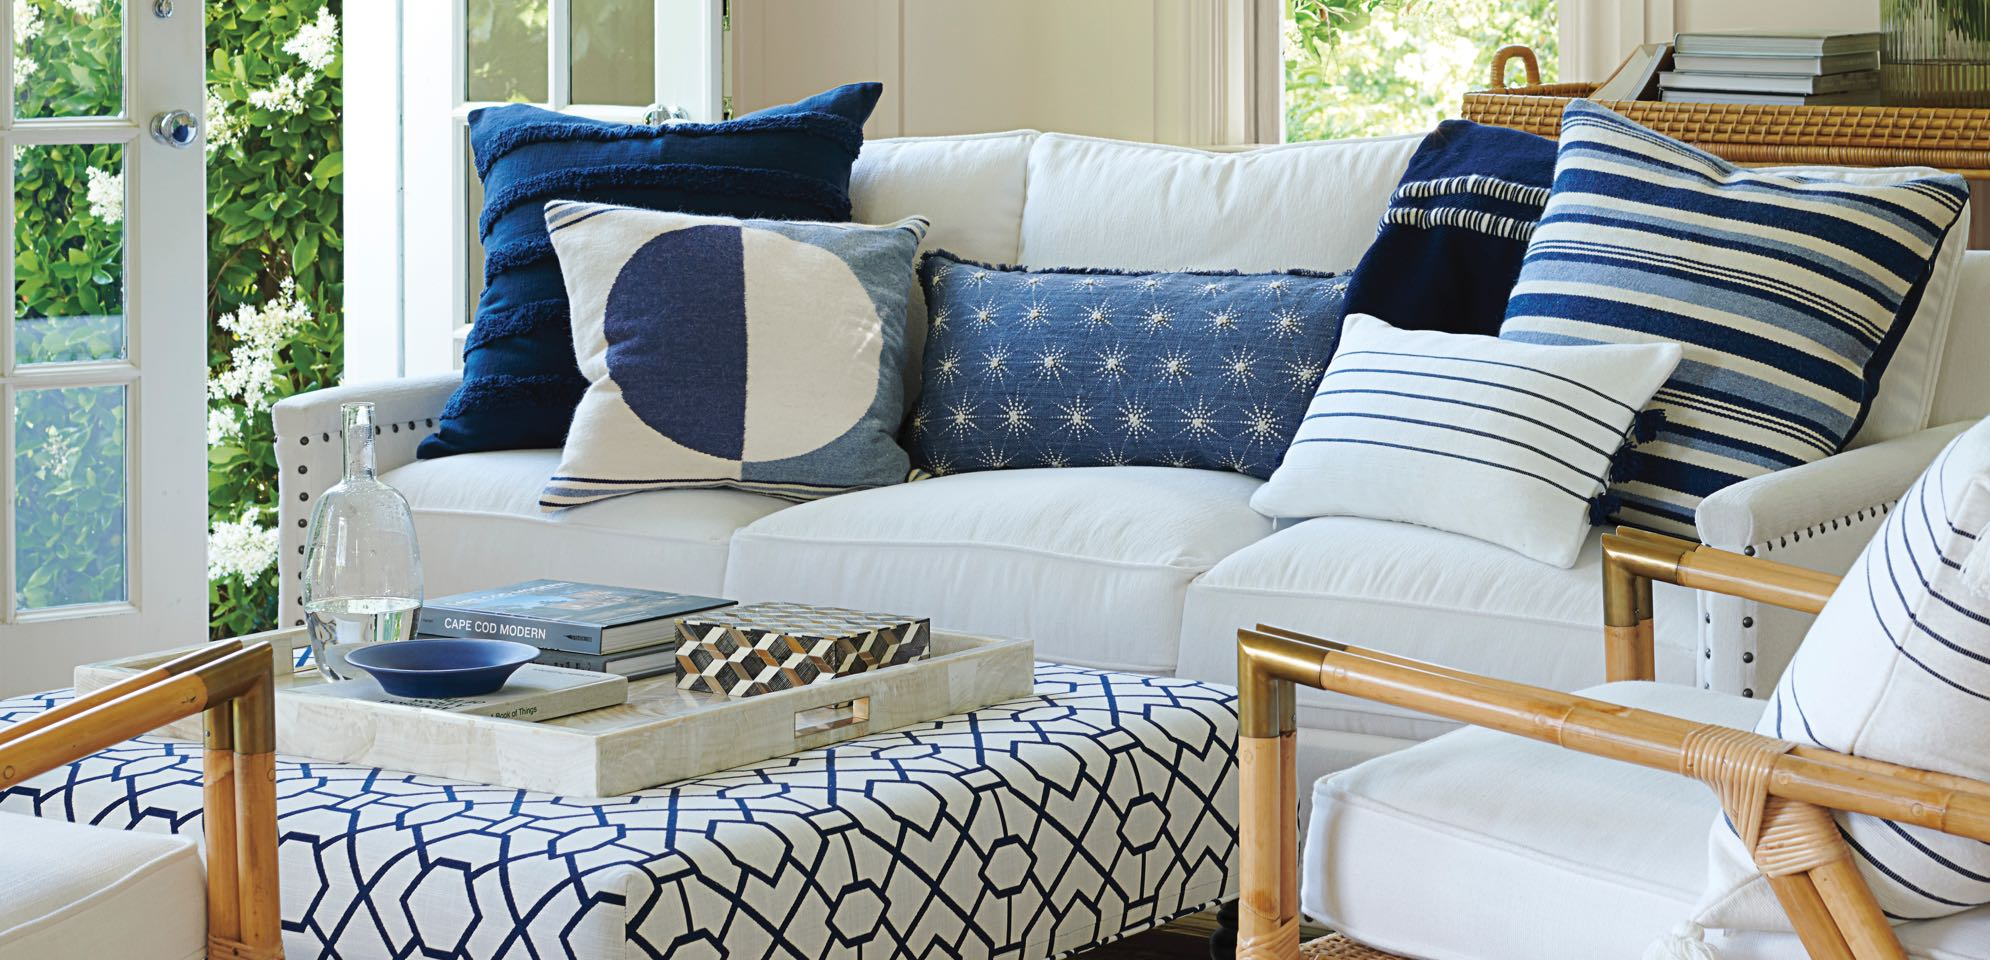 Brilliant How To Mix Match Pillows Andrewgaddart Wooden Chair Designs For Living Room Andrewgaddartcom